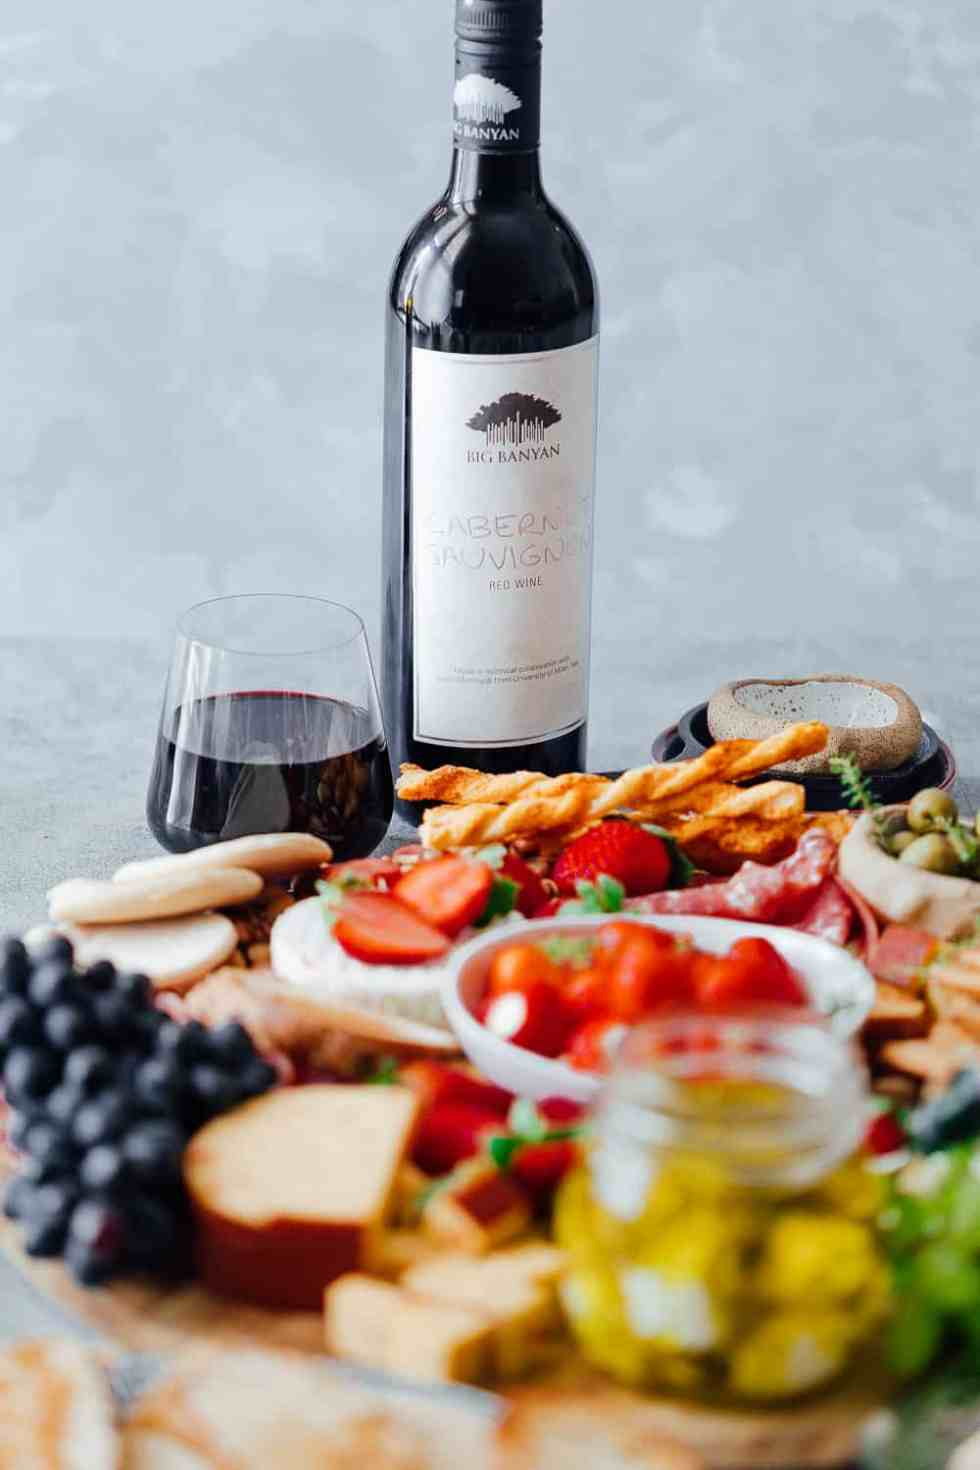 The ultimate wine and cheese board on a budget is not complete with the perfect wines. Pictured here is a cabernet sauvignon with the cheese platter